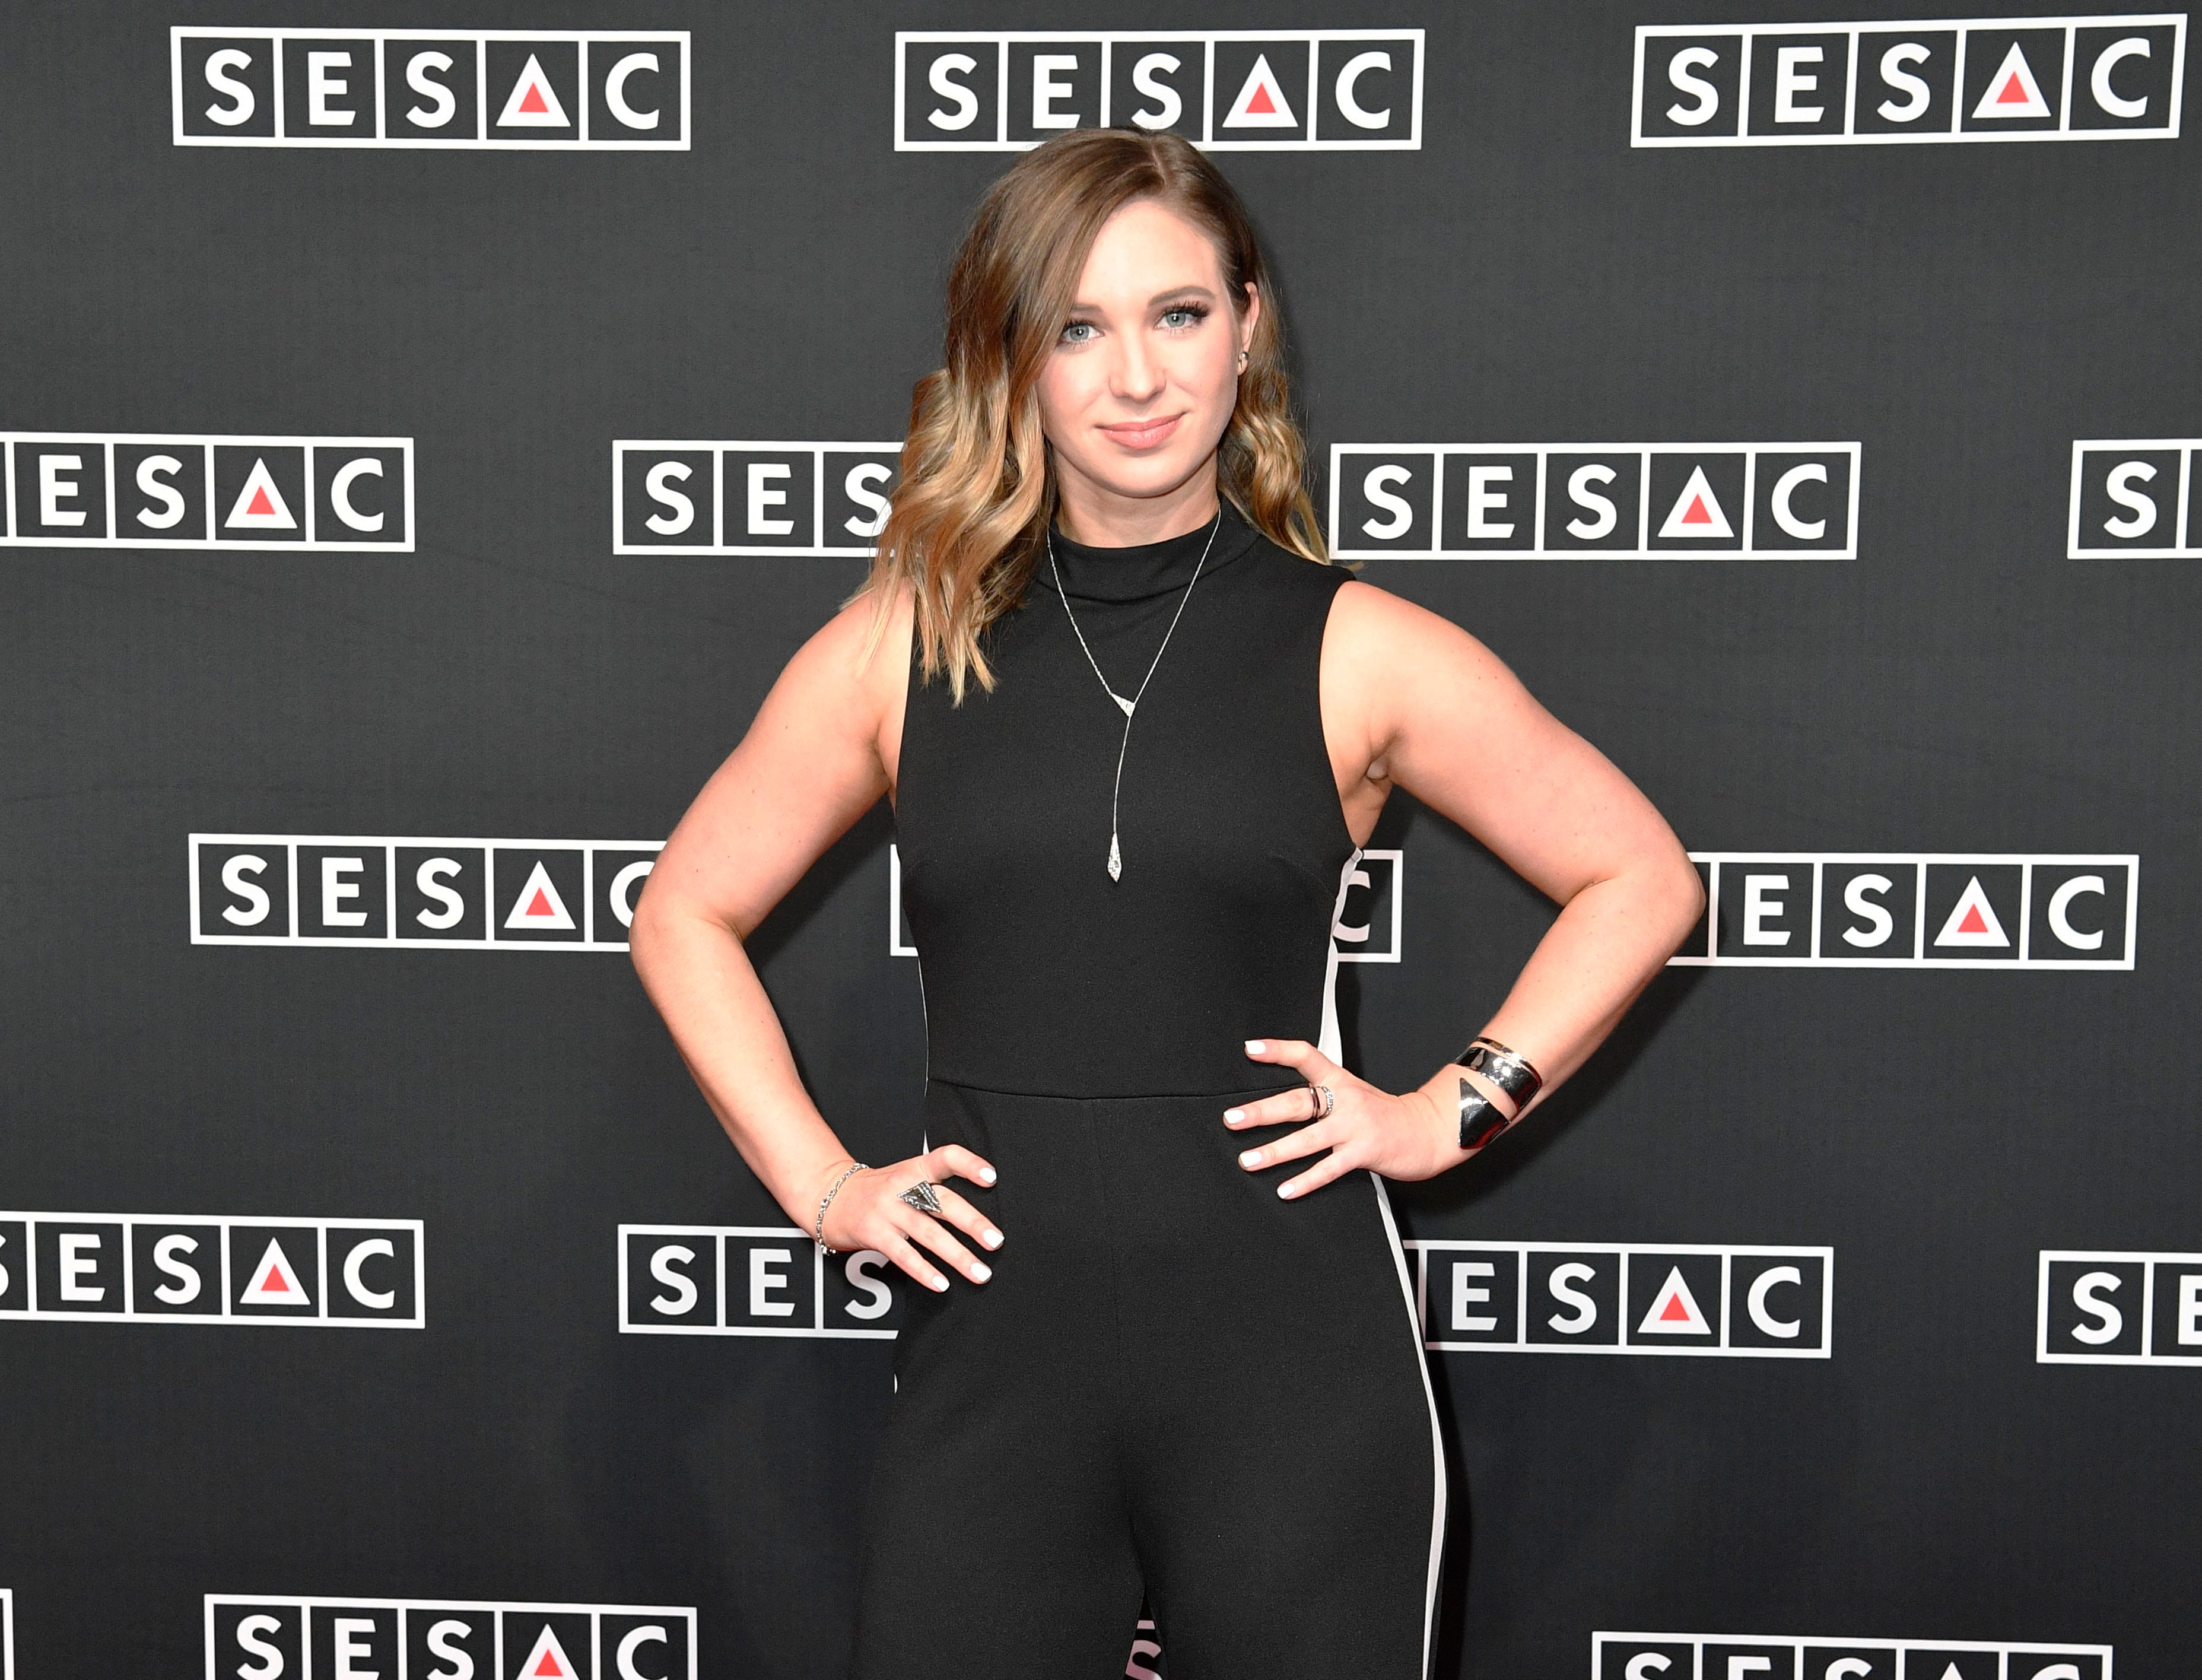 Olivia Lane on the red carpet at the SESAC Nashville Music Awards at the Country Music Hall of Fame and Museum Sunday Nov. 11, 2018, in Nashville, Tenn.